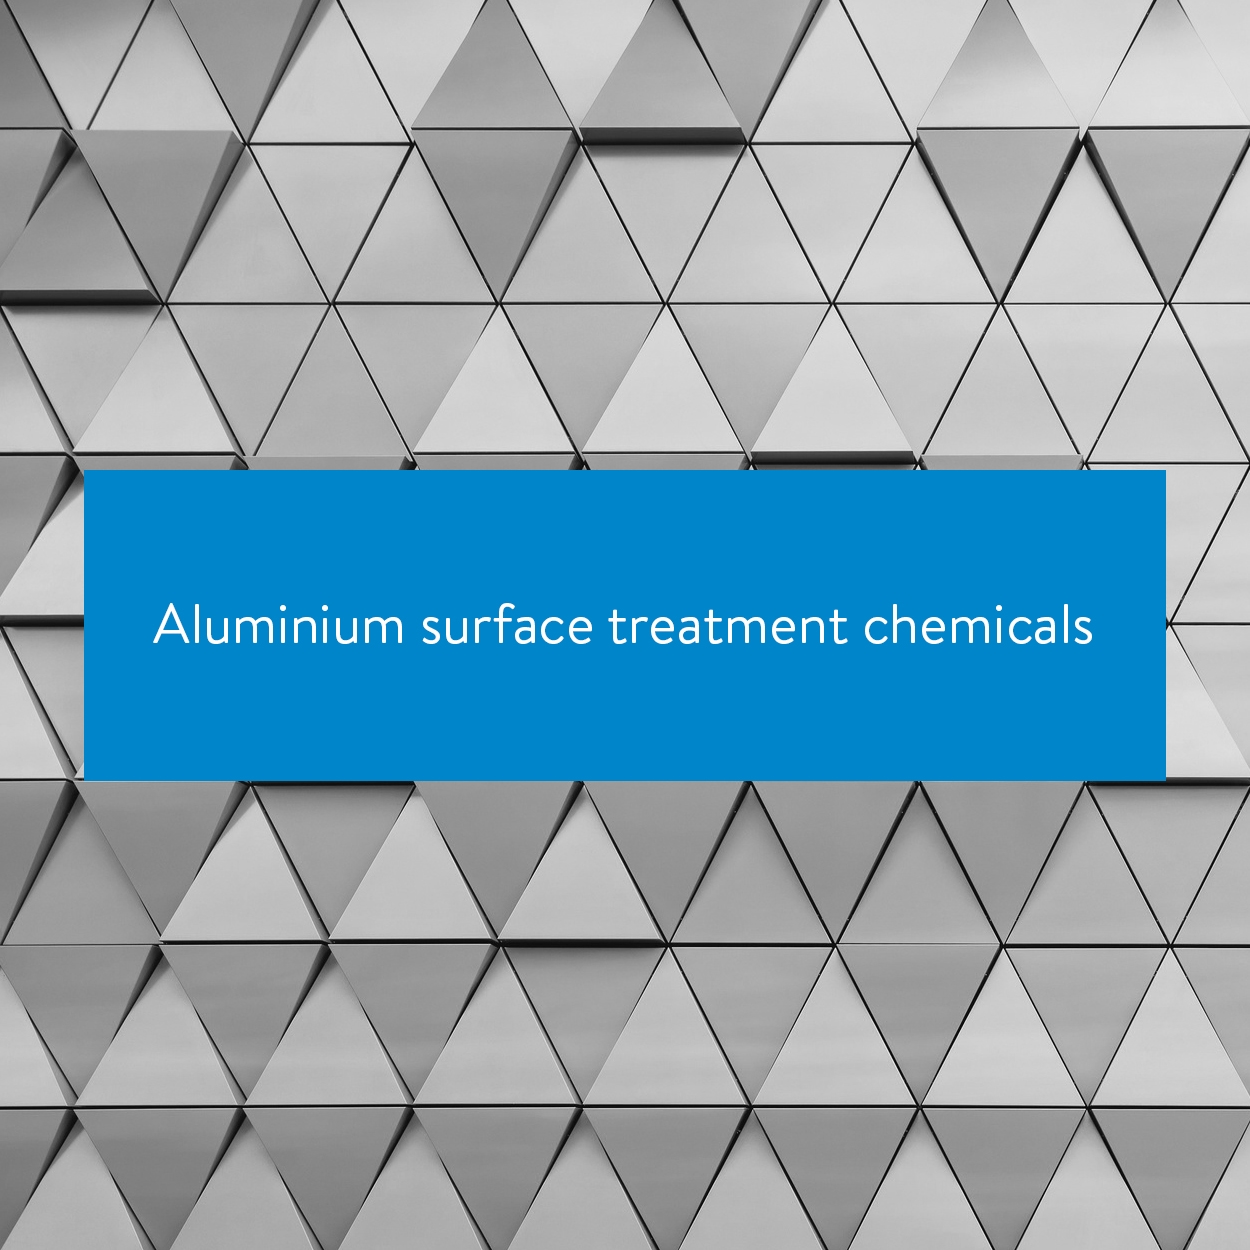 Aluminium surface treatment chemicals